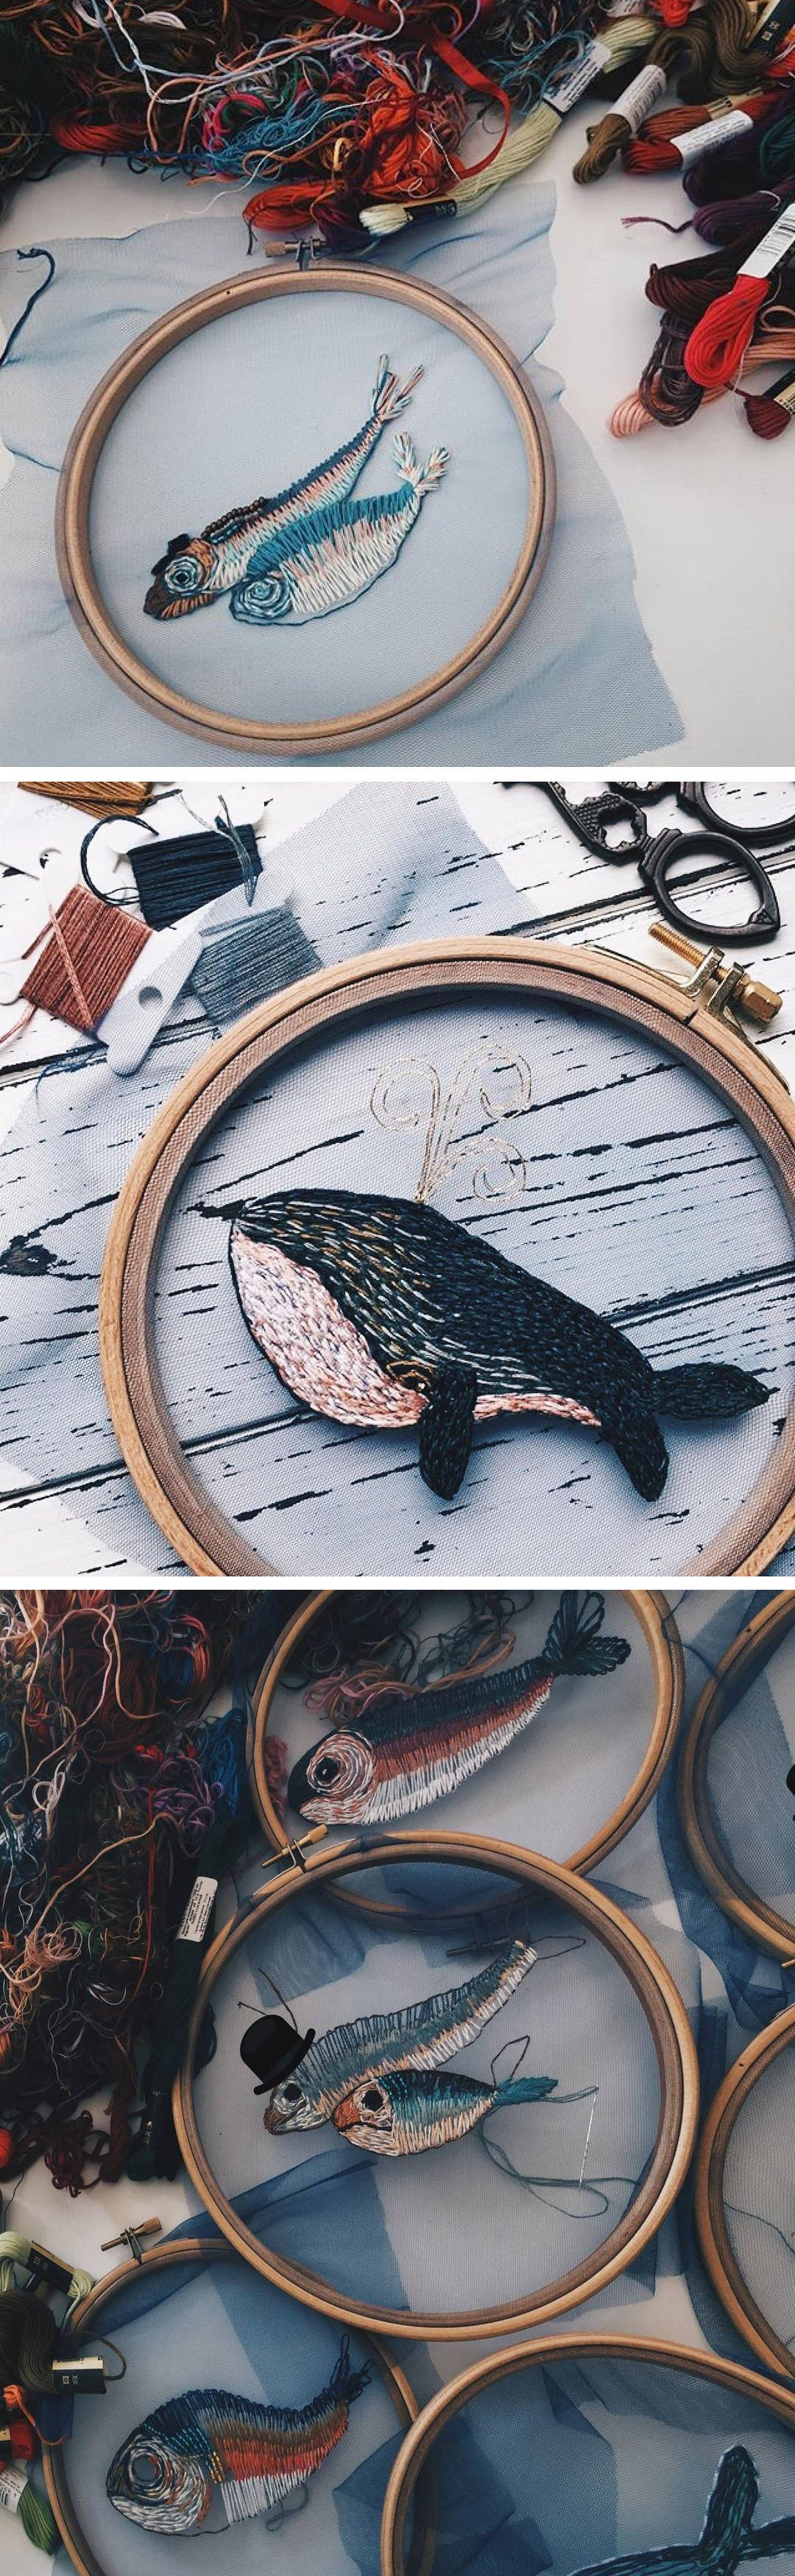 fish embroidery on tulle turns an embroidery hoop into a fishbowl is part of Embroidery - Fish Embroidery on Tulle Turns an Embroidery Hoop into a Fishbowl Loveart DIY